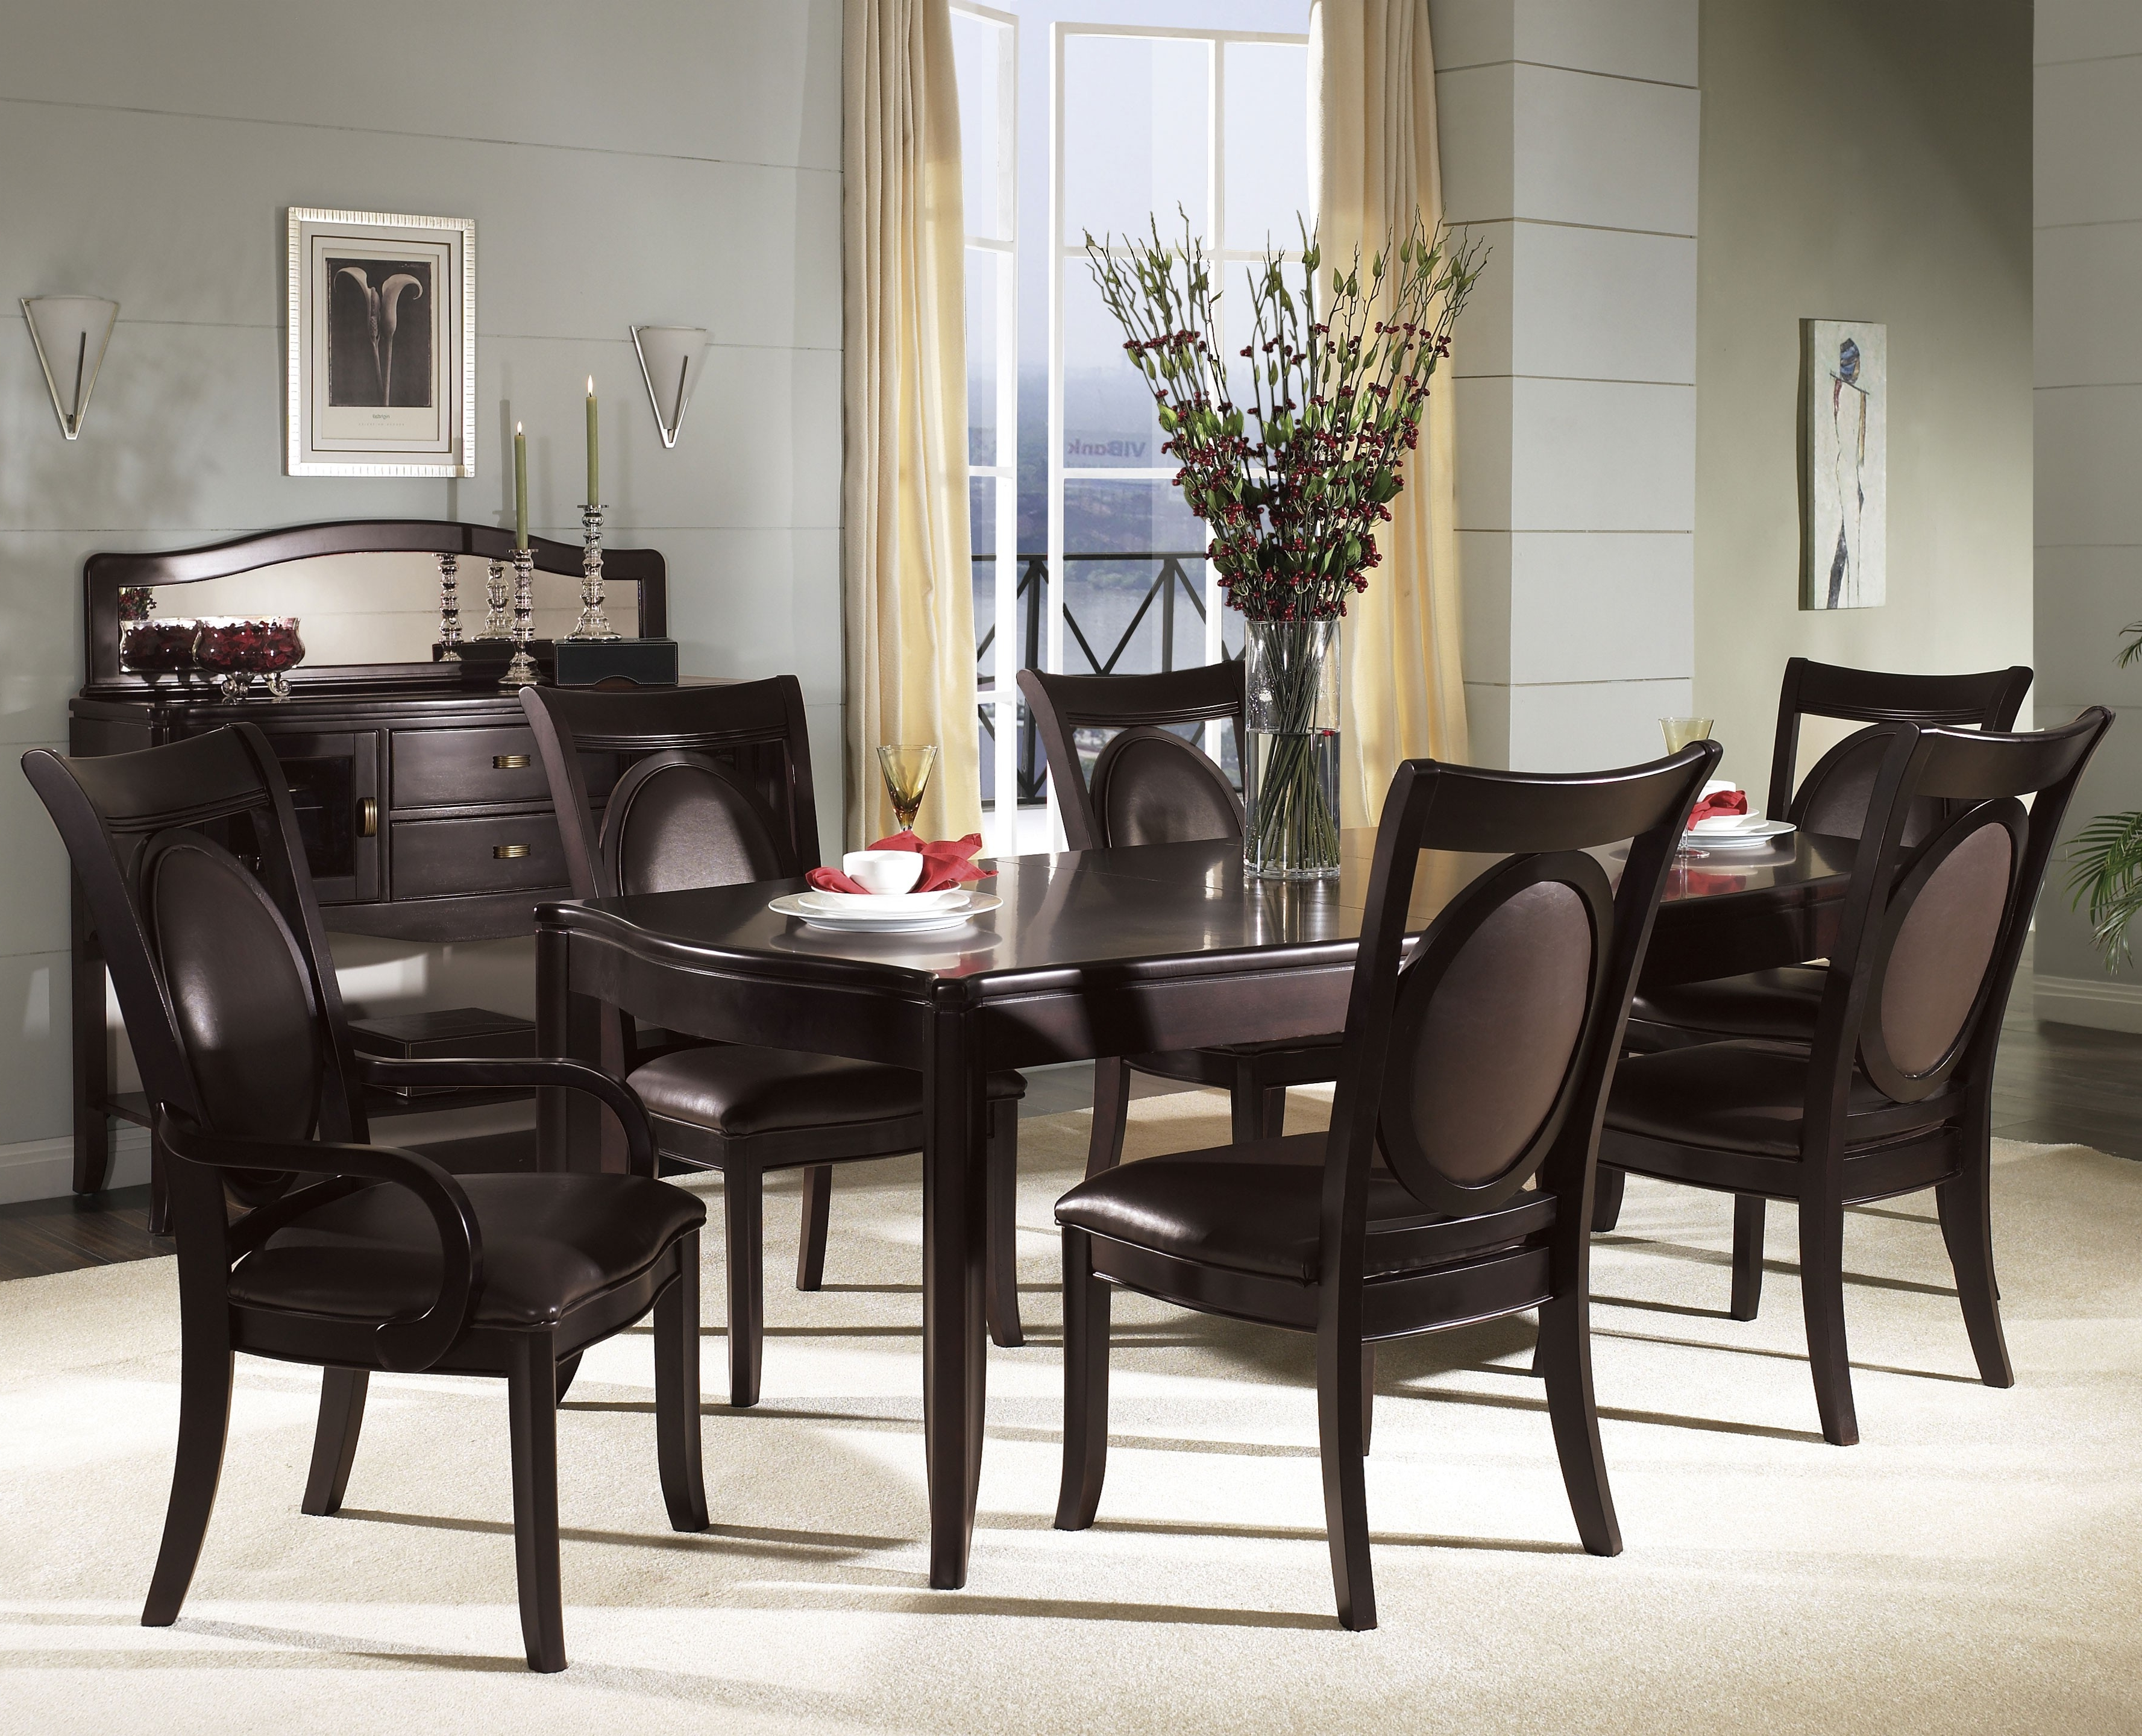 Cheap Dining Sets In Well Known Formal Oval Dining Room Sets New Amusing Cheap Dining Table 5 Sets (View 2 of 25)